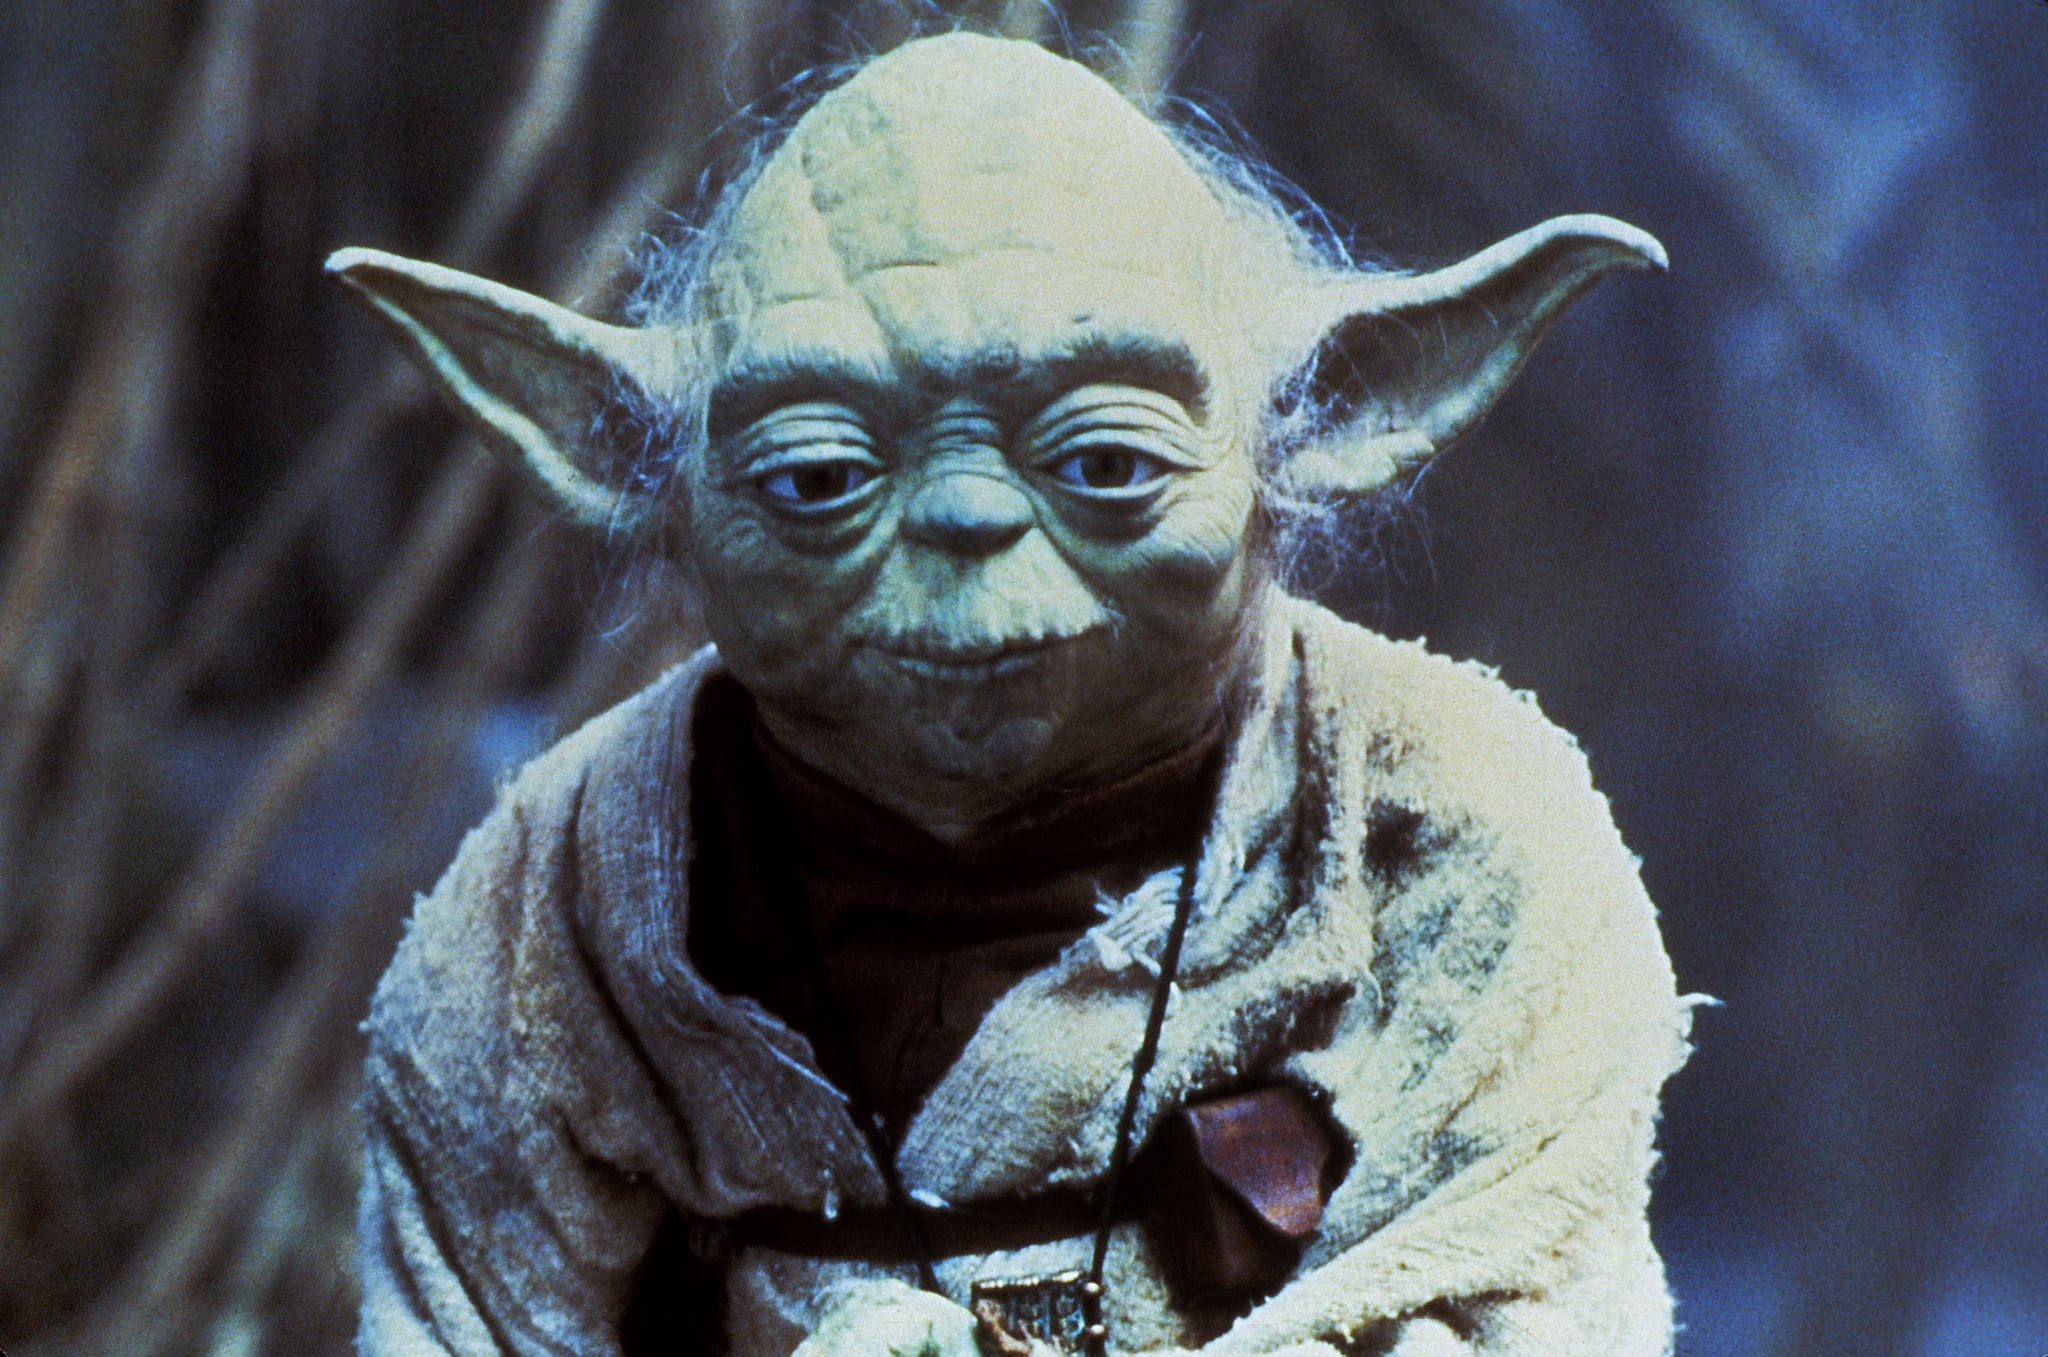 STAR WARS: EPISODE V - THE EMPIRE STRIKES BACK, Yoda, 1980, Lucasfilms / courtesy Everett Collection